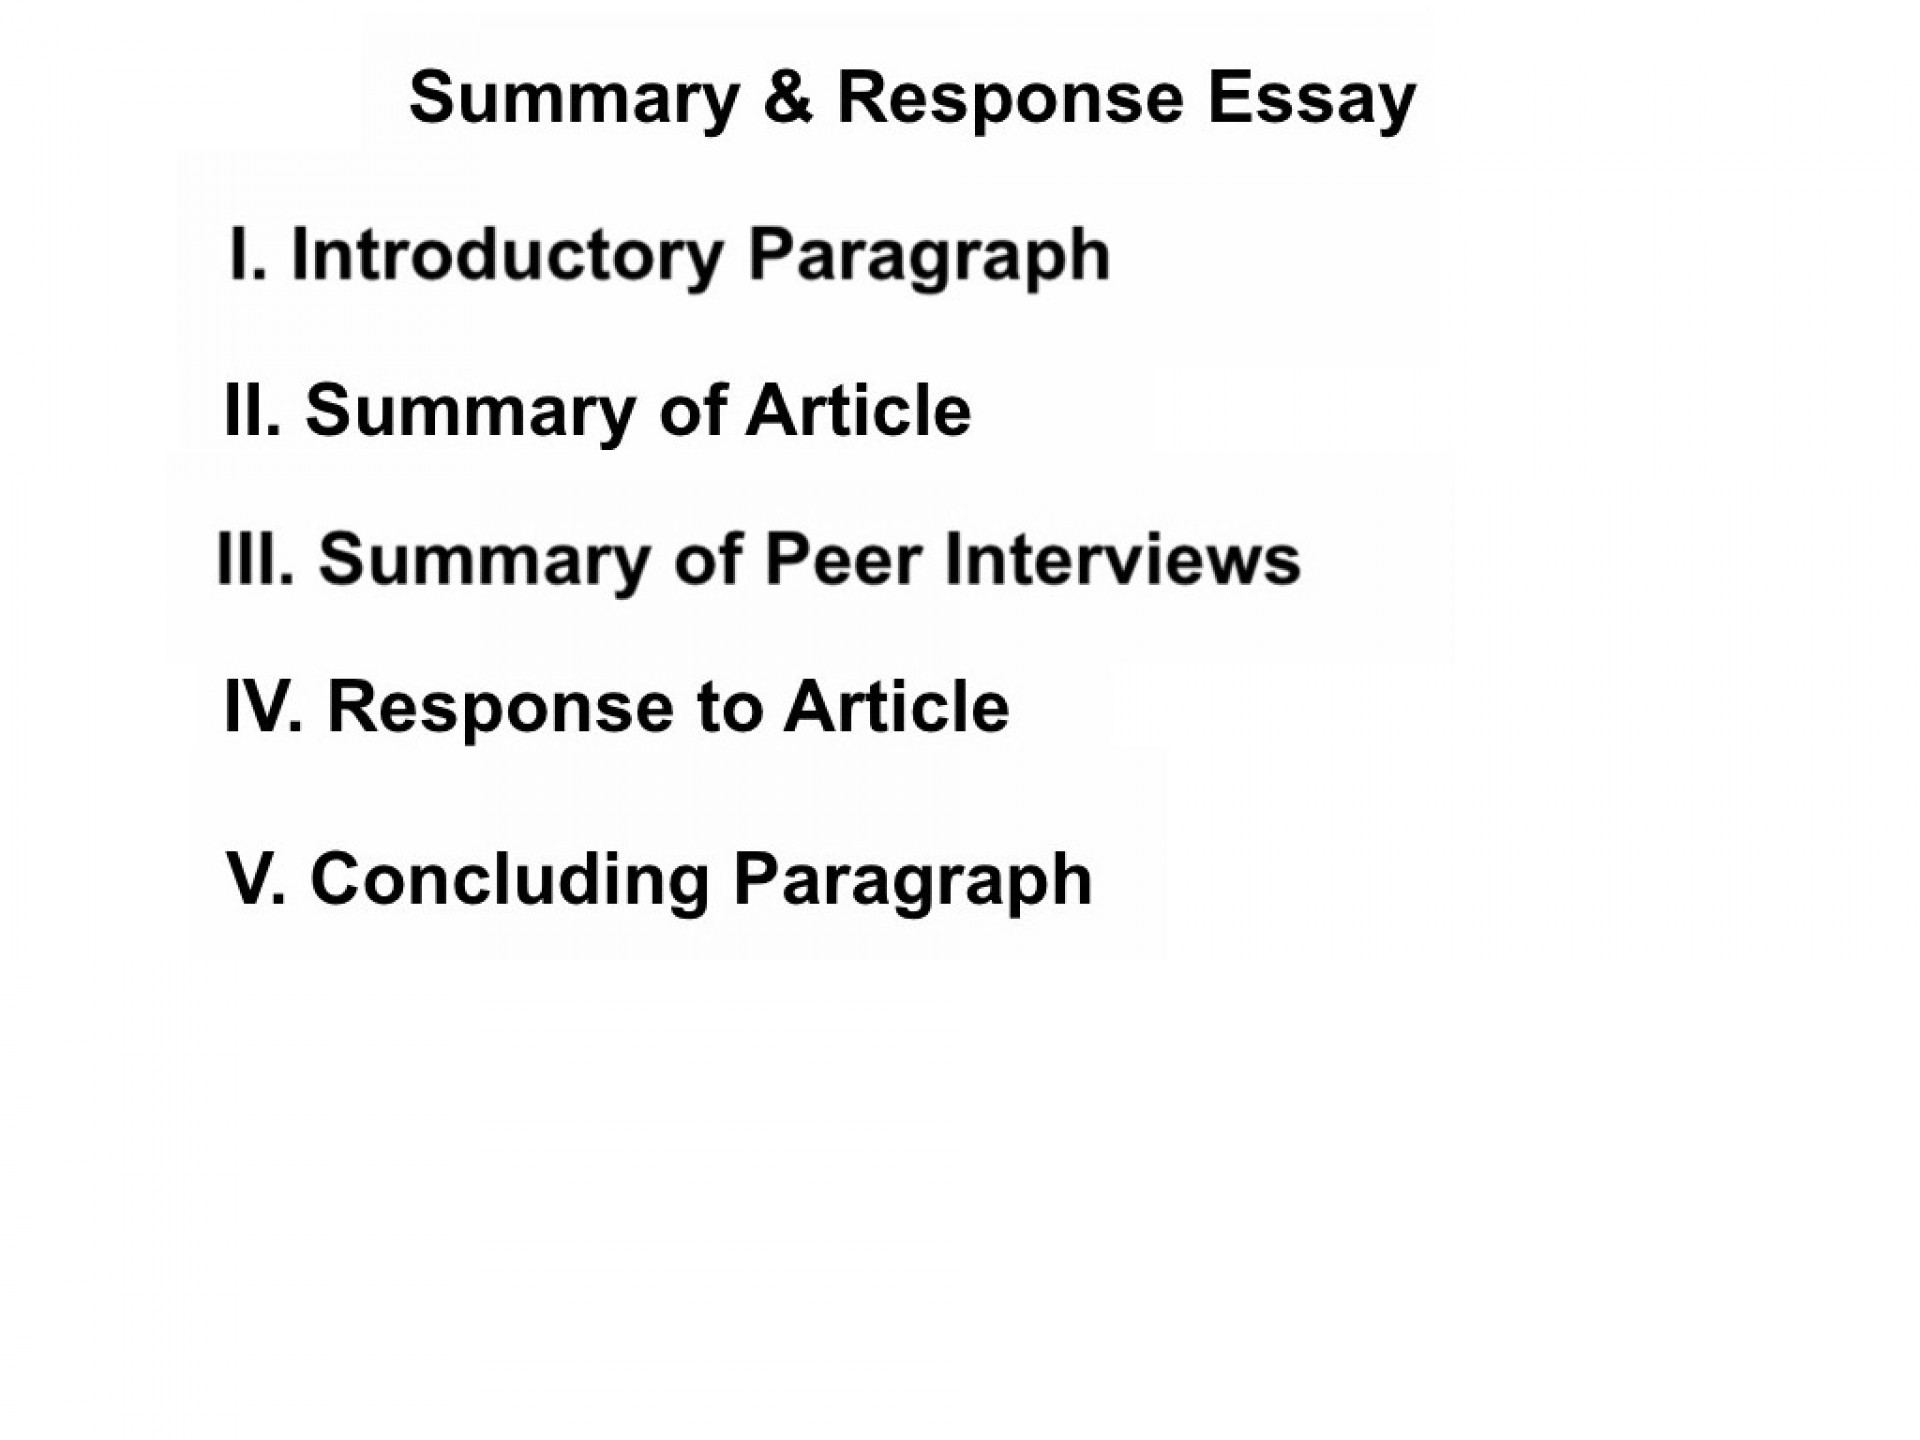 005 Summary And Response Essay Thumbs1310783831 Stupendous Thesis Conclusion Analysis Sample 1920